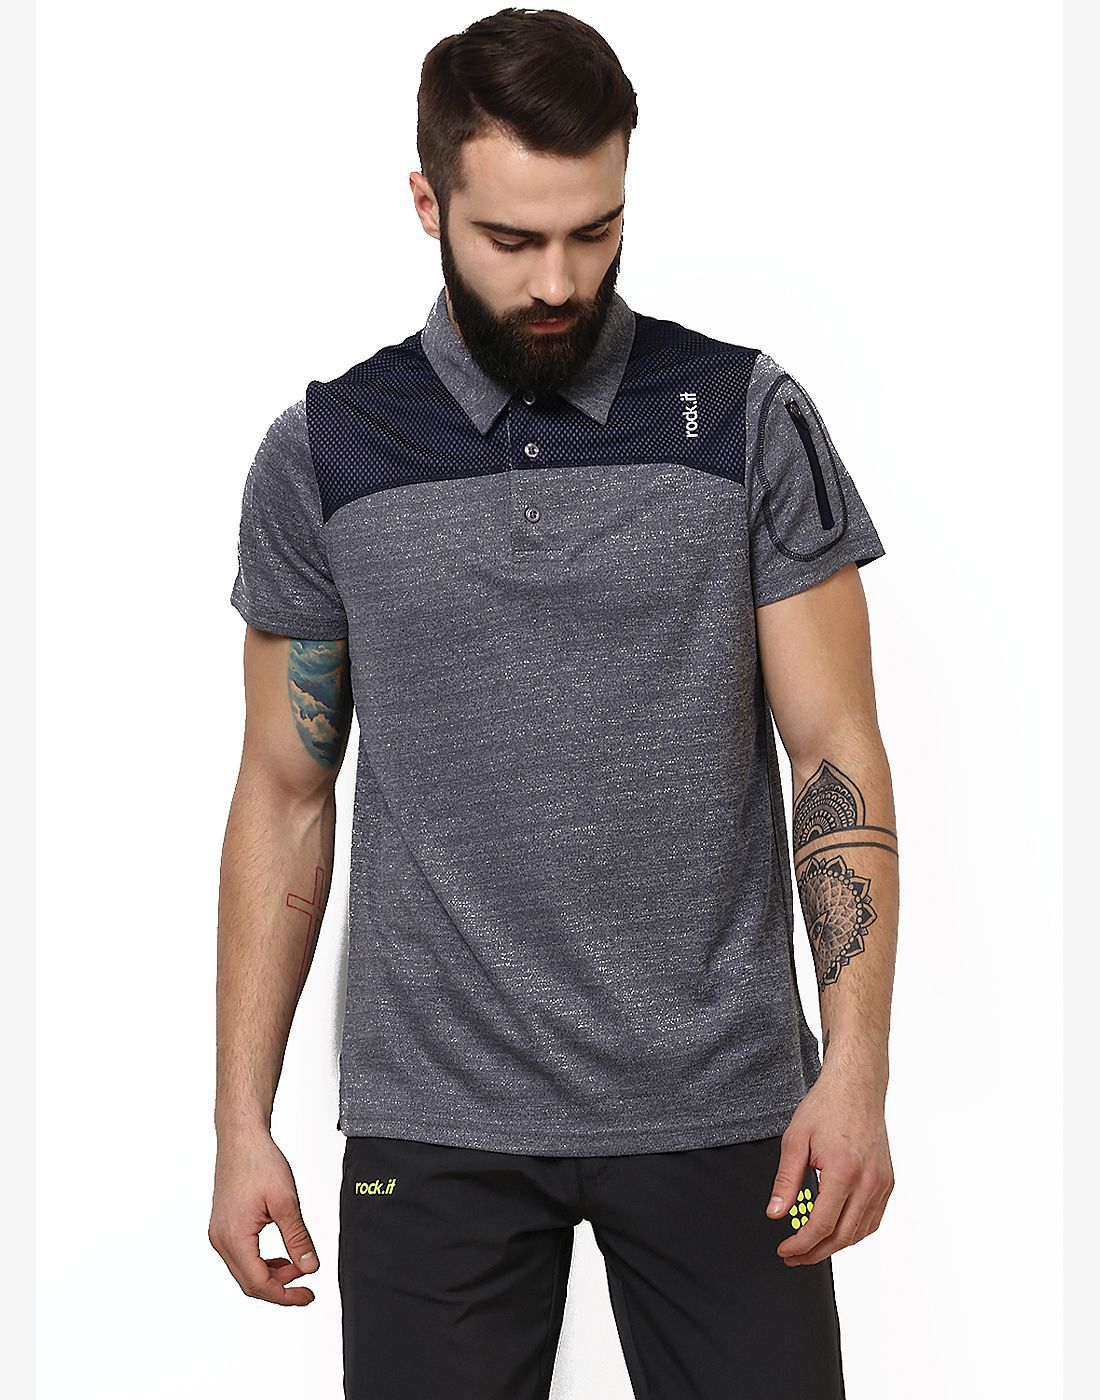 Rock.it Grey Polyester Polo T-Shirt